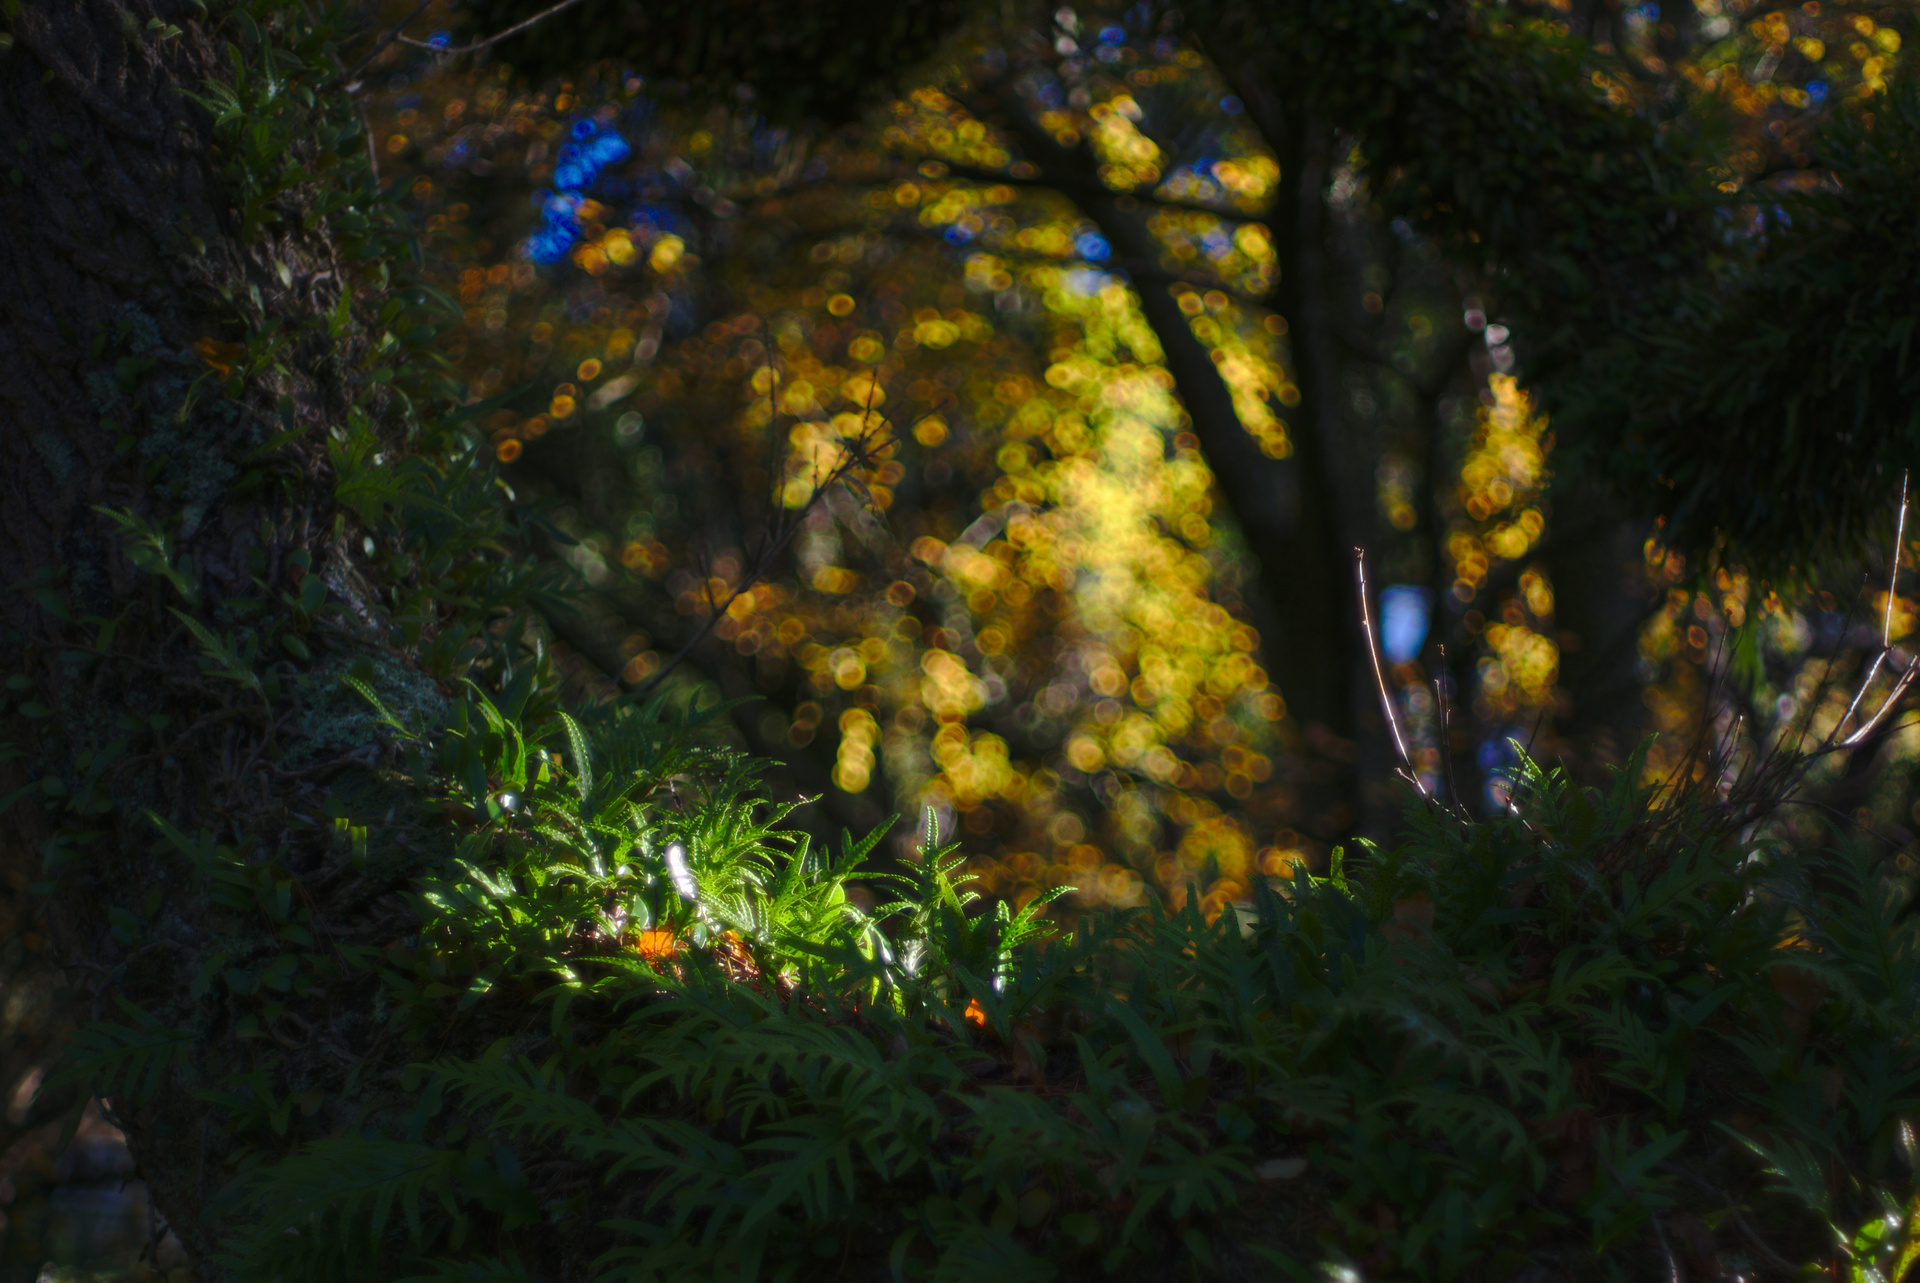 Autumn morning in the Wellington Botanical Gardens. Shot at f/2.8